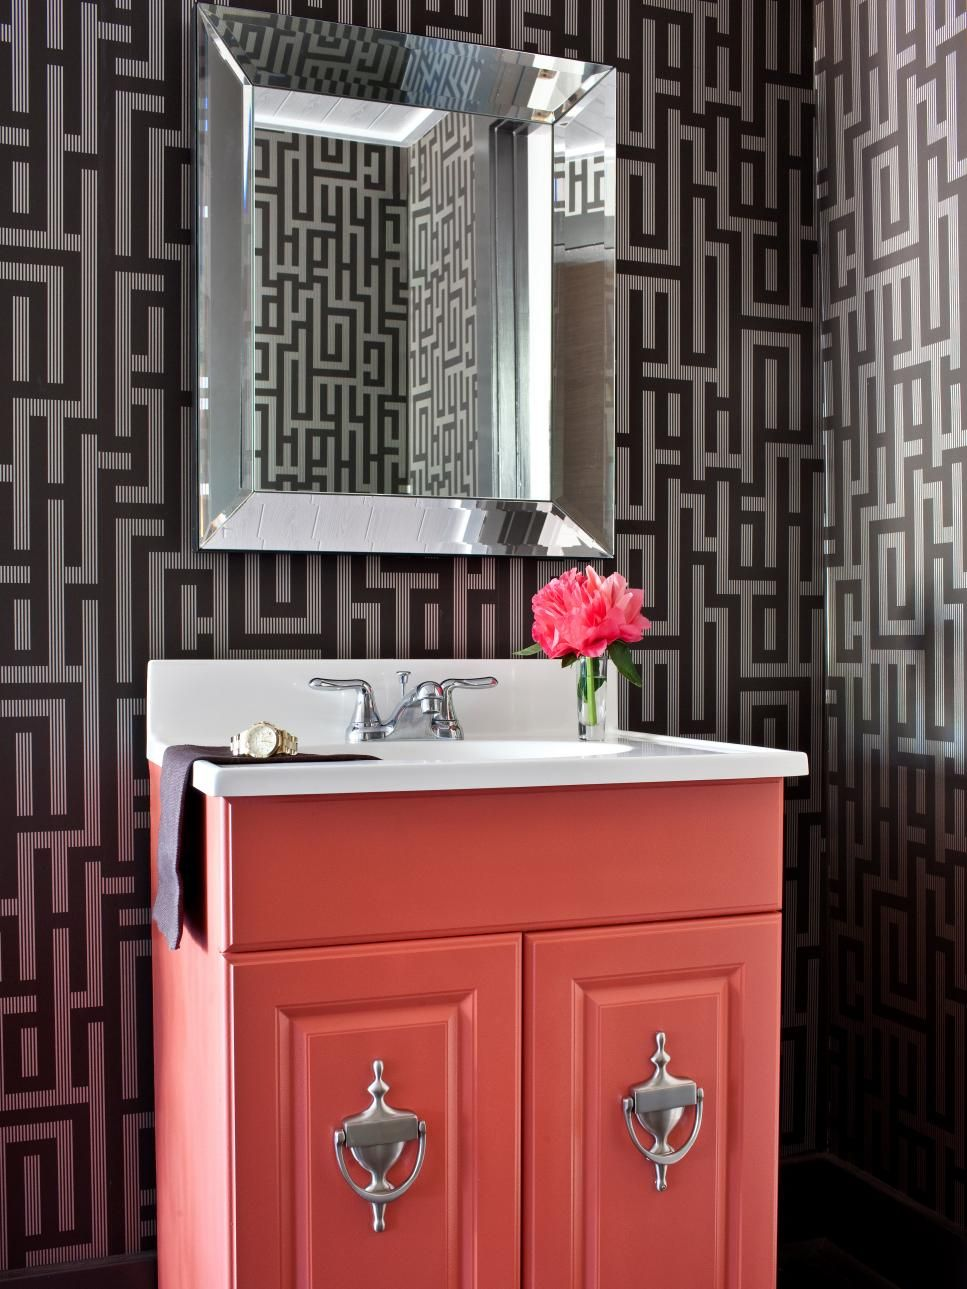 17 Clever Ideas For Small Baths  Bold Colors Hgtv And Bath Entrancing Clever Small Bathroom Designs Decorating Inspiration